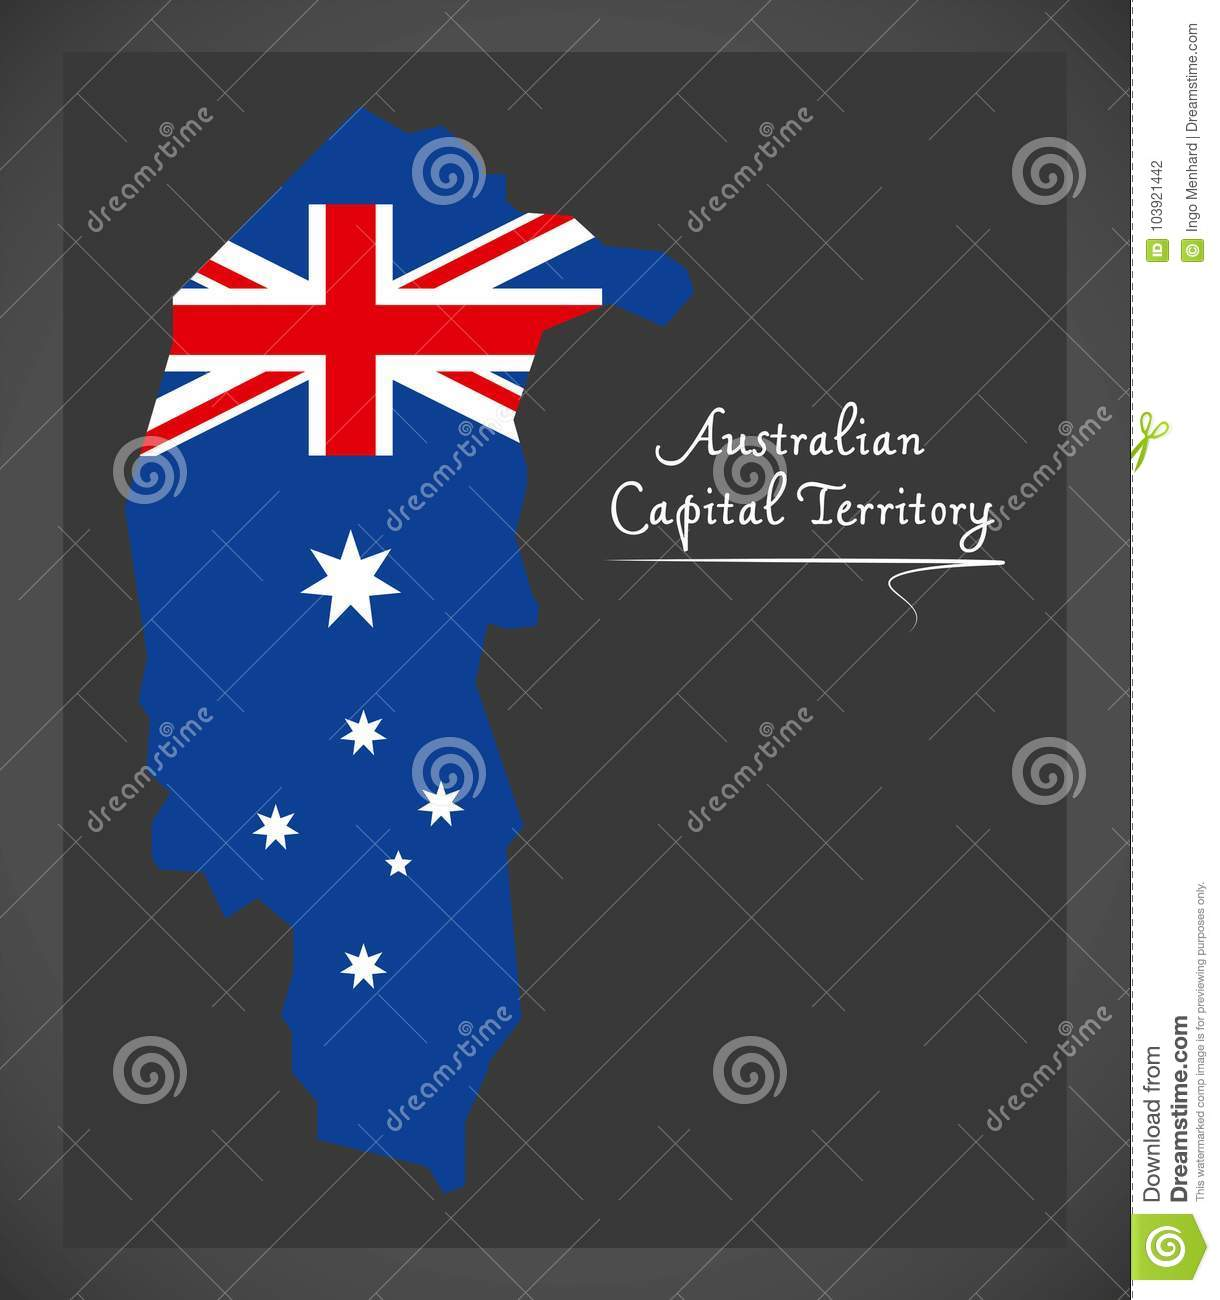 Australian Capital Territory map with national flag illustration